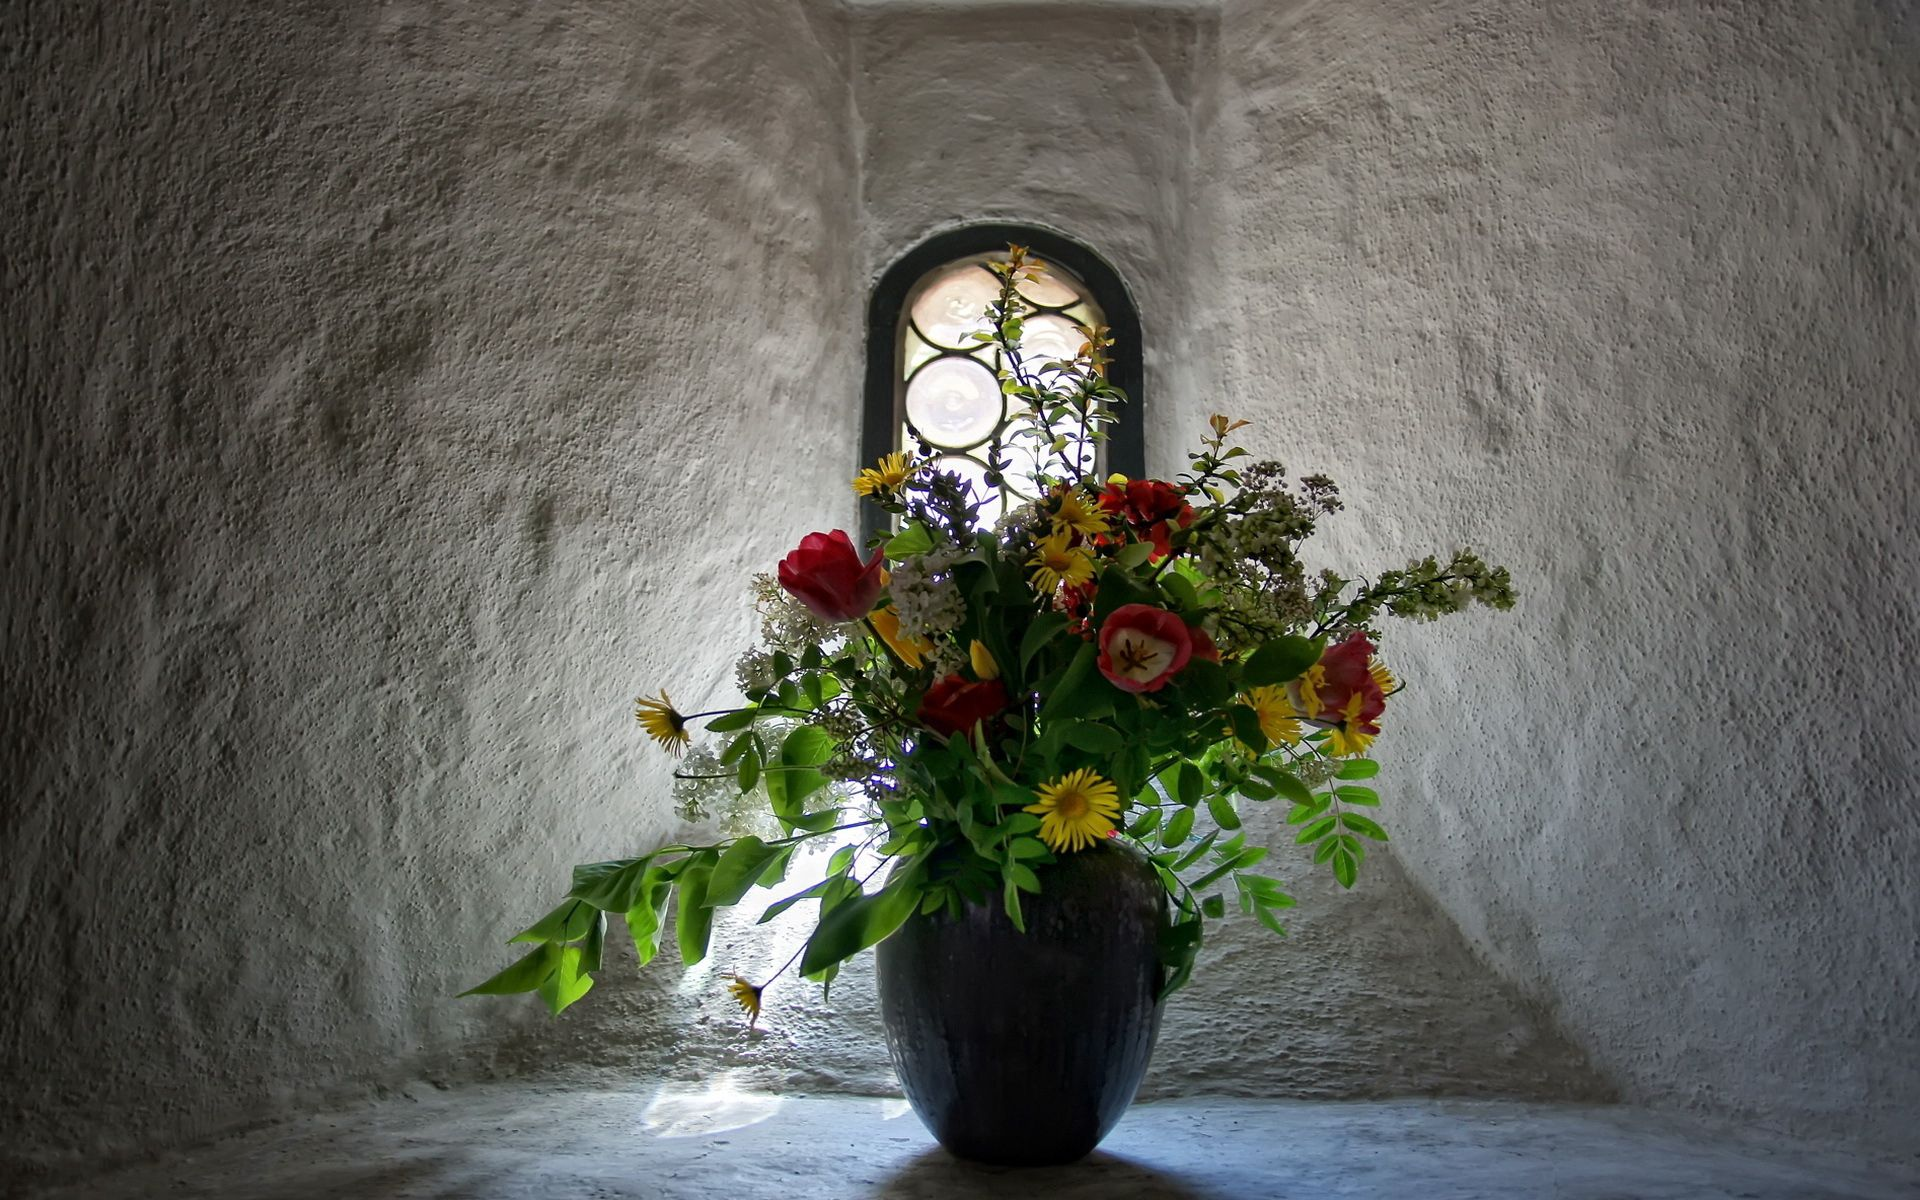 76114 download wallpaper Flowers, Tulips, Walls, Bouquet, Window, Vase screensavers and pictures for free